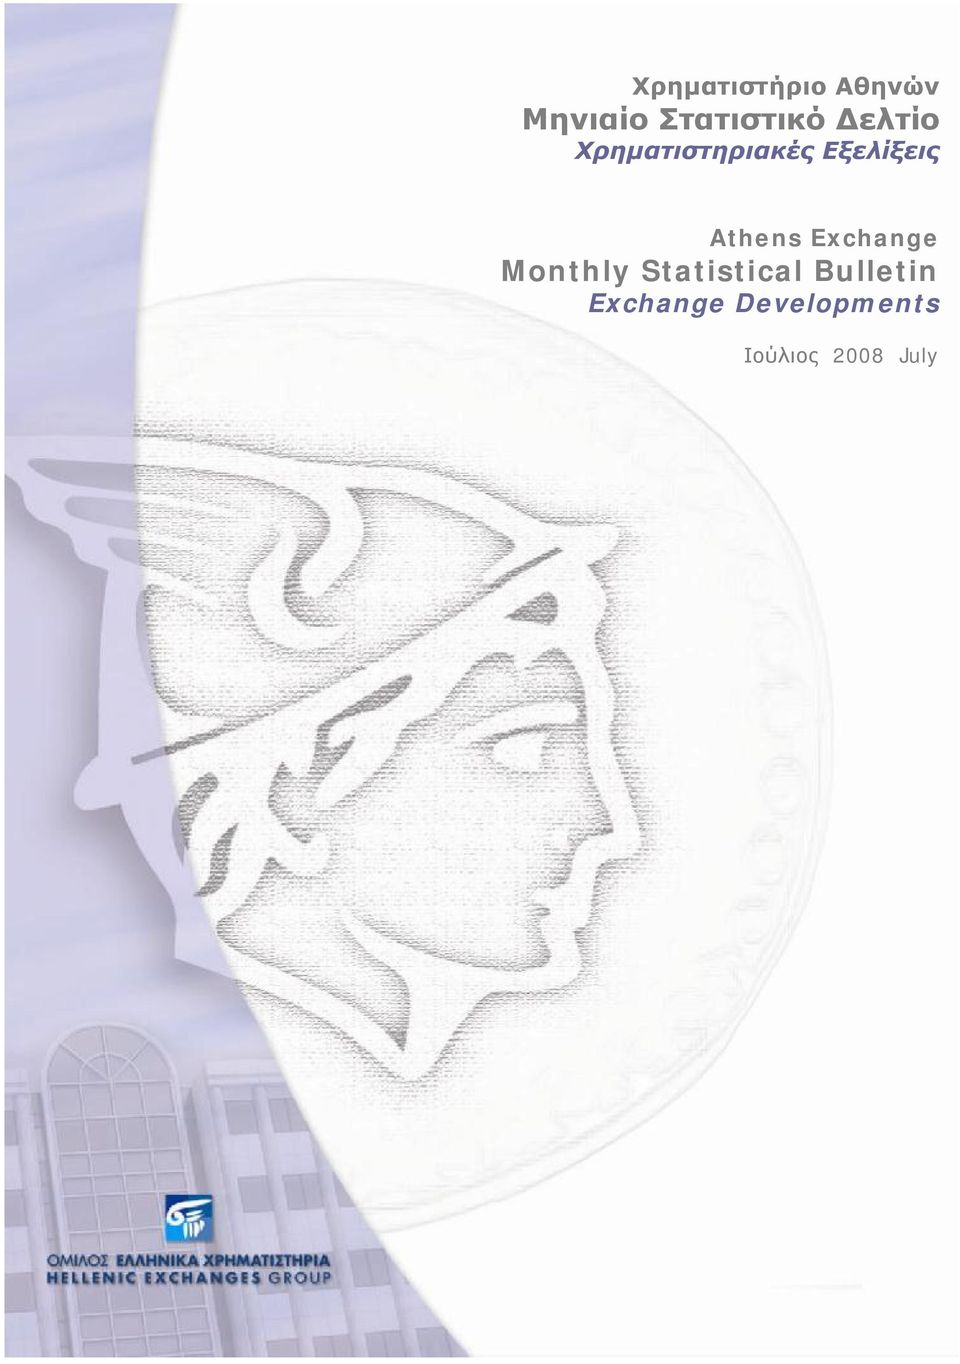 Athens Exchange Monthly Statistical